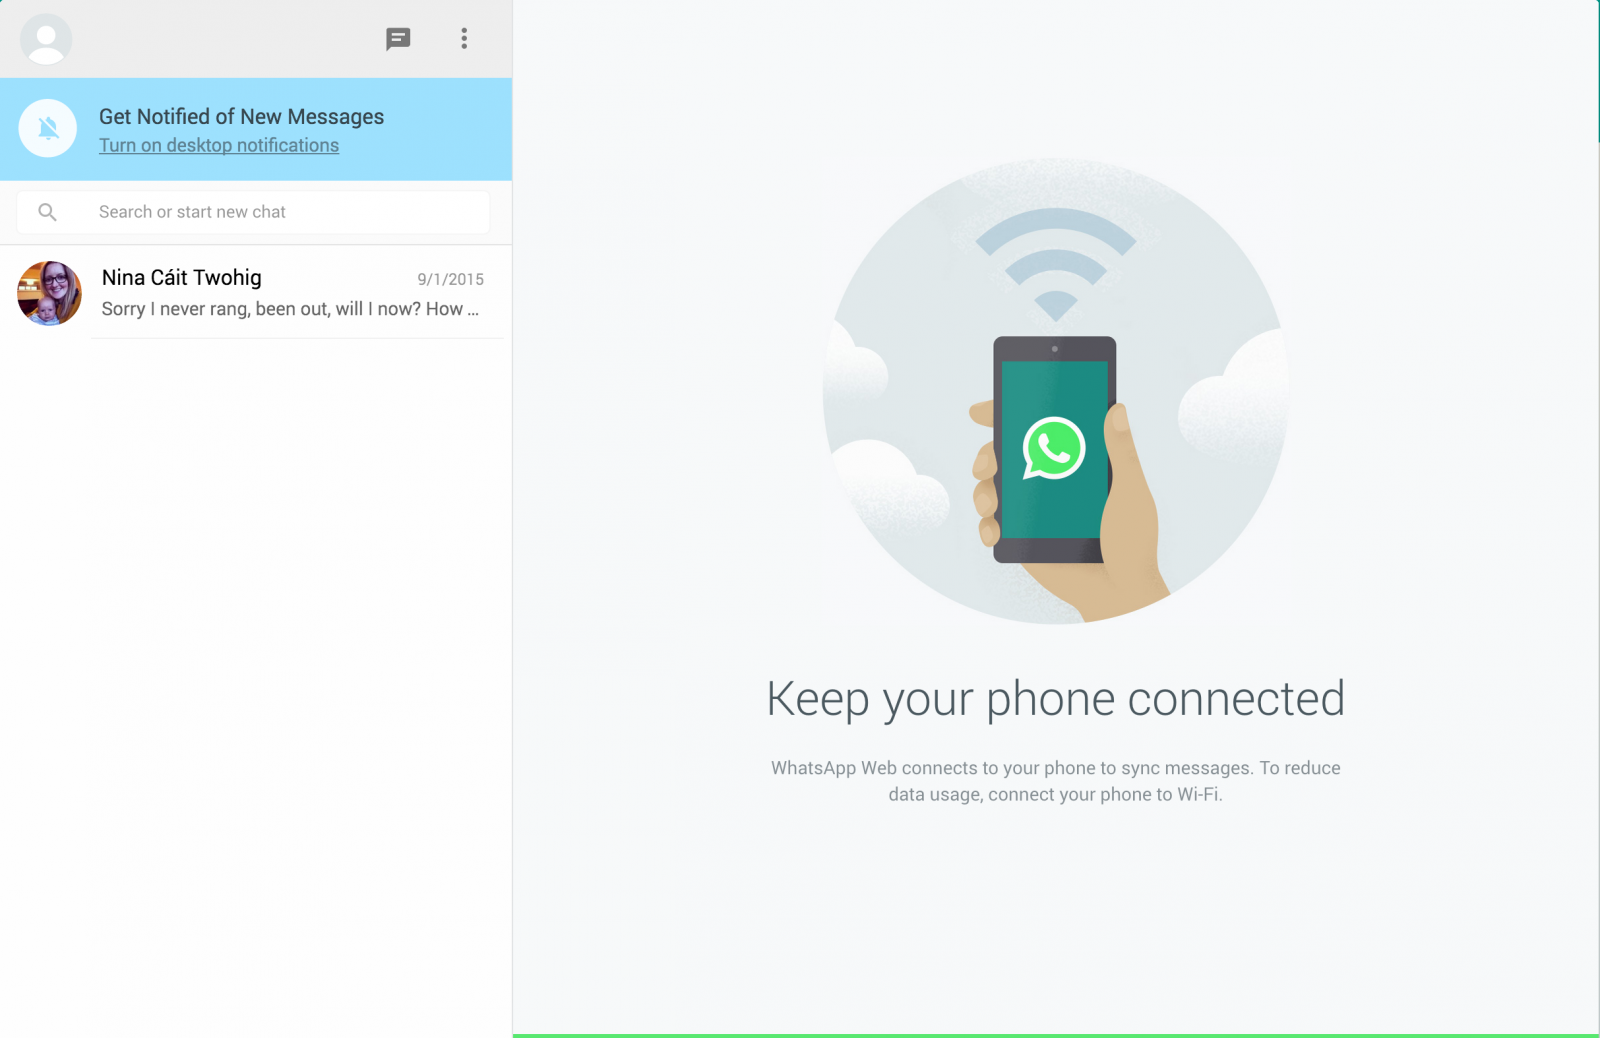 WhatsApp Web: How to use WhatsApp on a PC